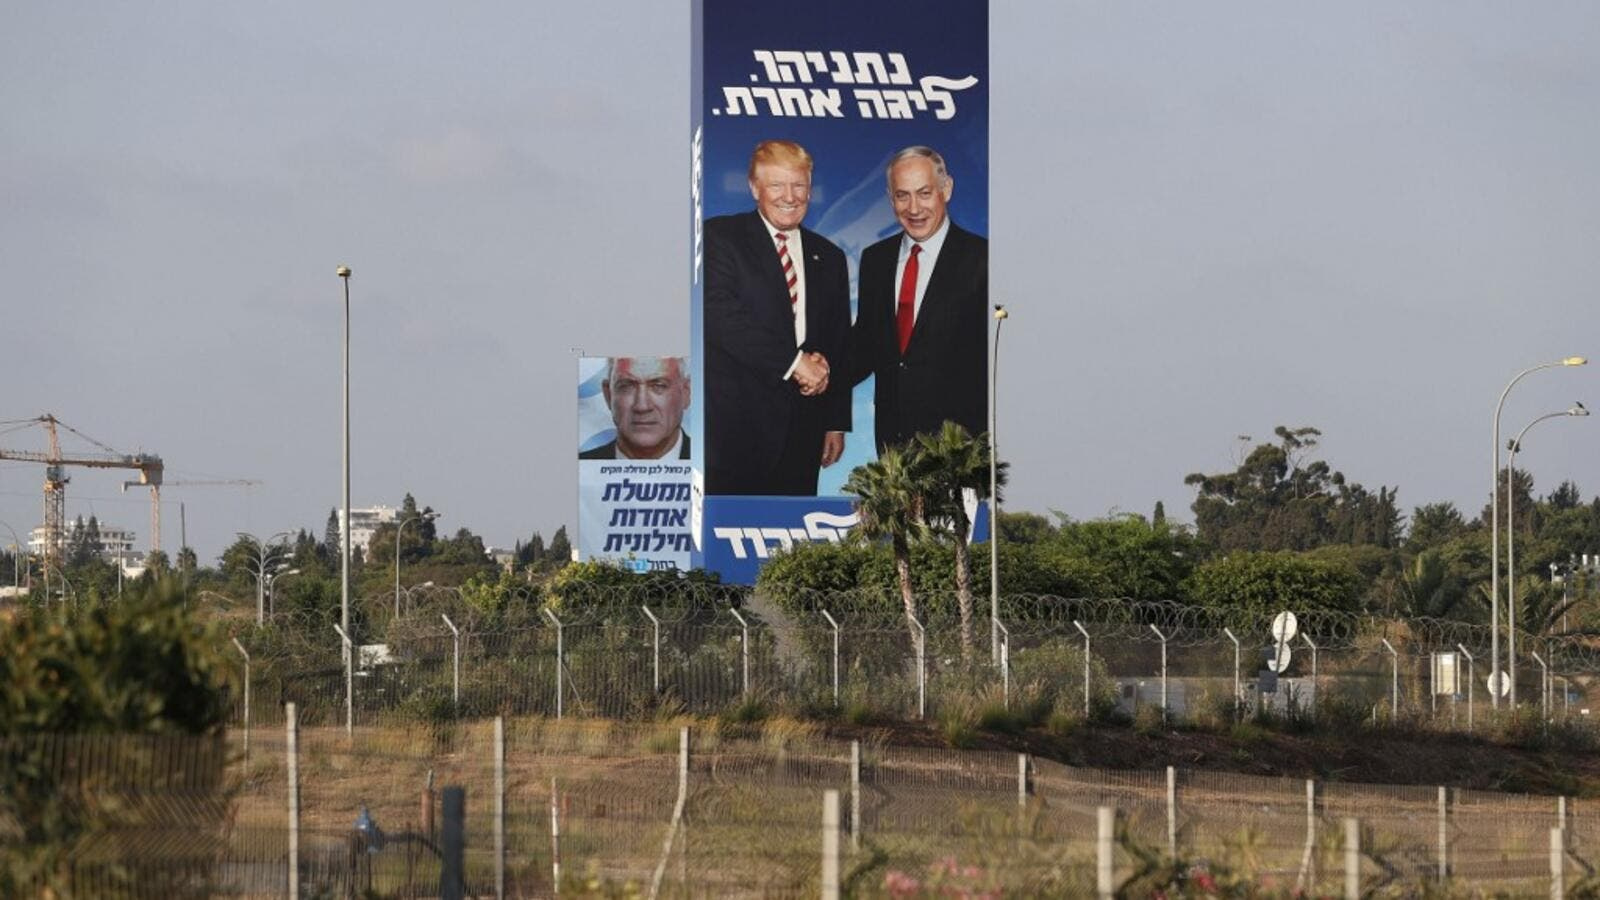 This picture taken on September 9, 2019 shows Israeli election billboards in the Israeli coastal city of Tel Aviv (R to L) for the Likud party showing US President Donald Trump shaking hands with Likud chairman and Prime Minister Benjamin Netanyahu  (AFP)